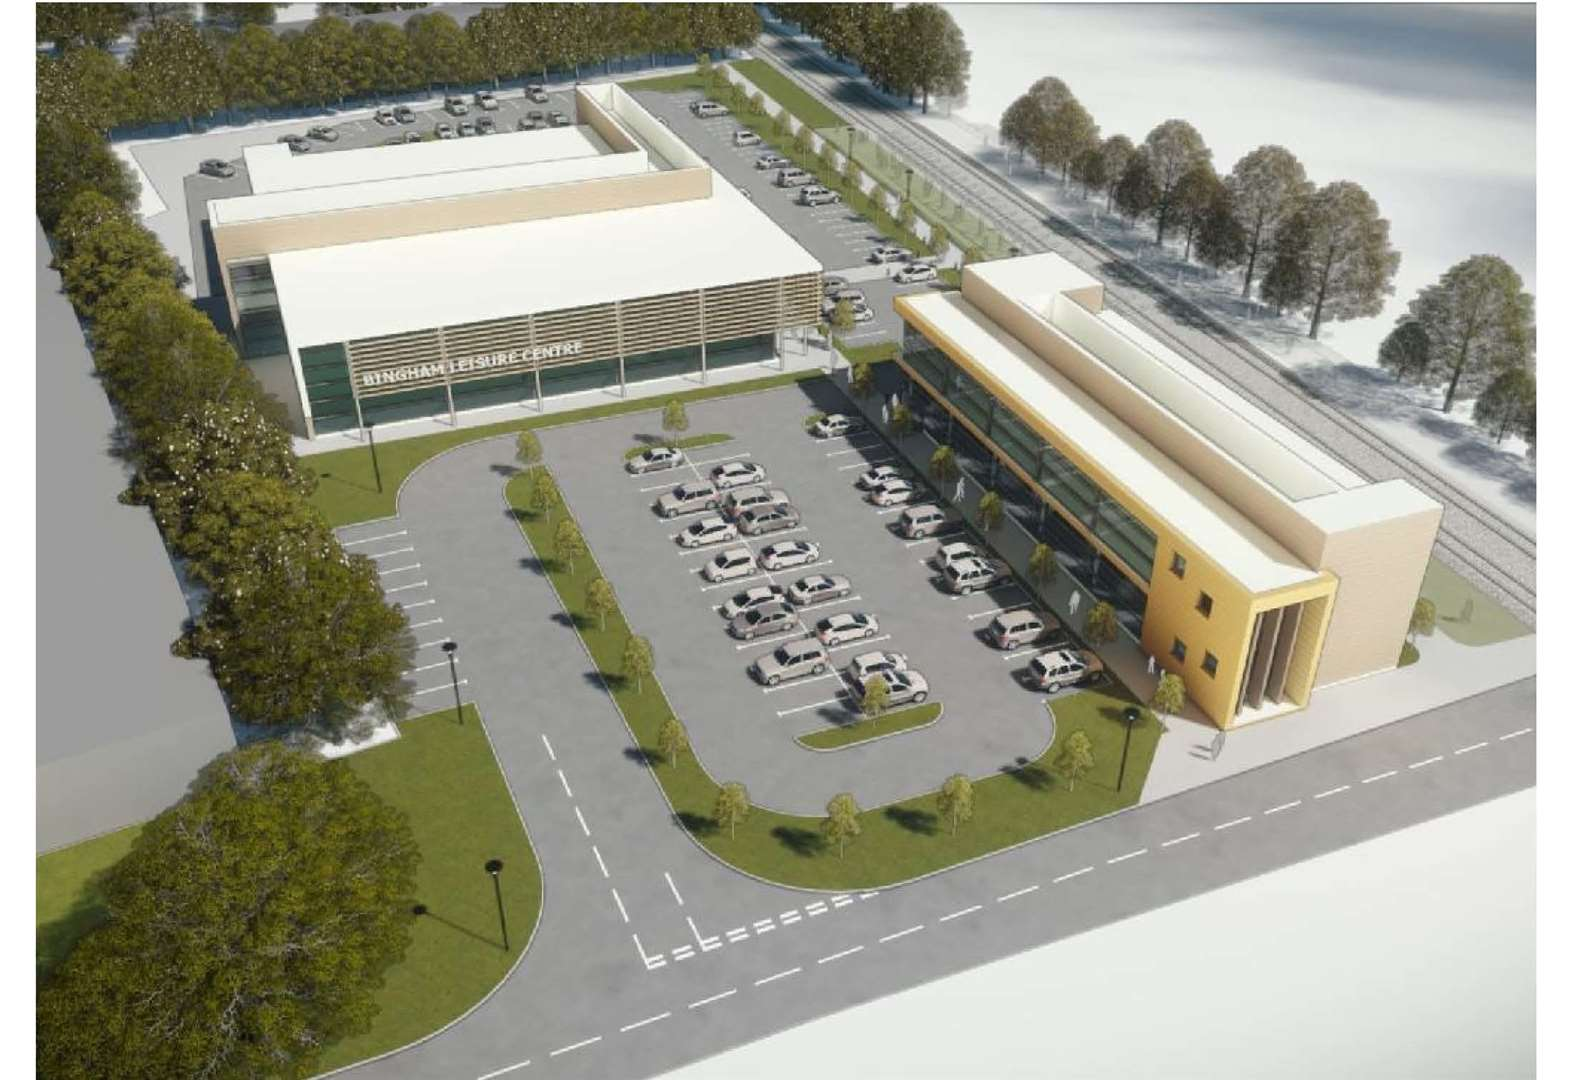 New £20m leisure centre approved